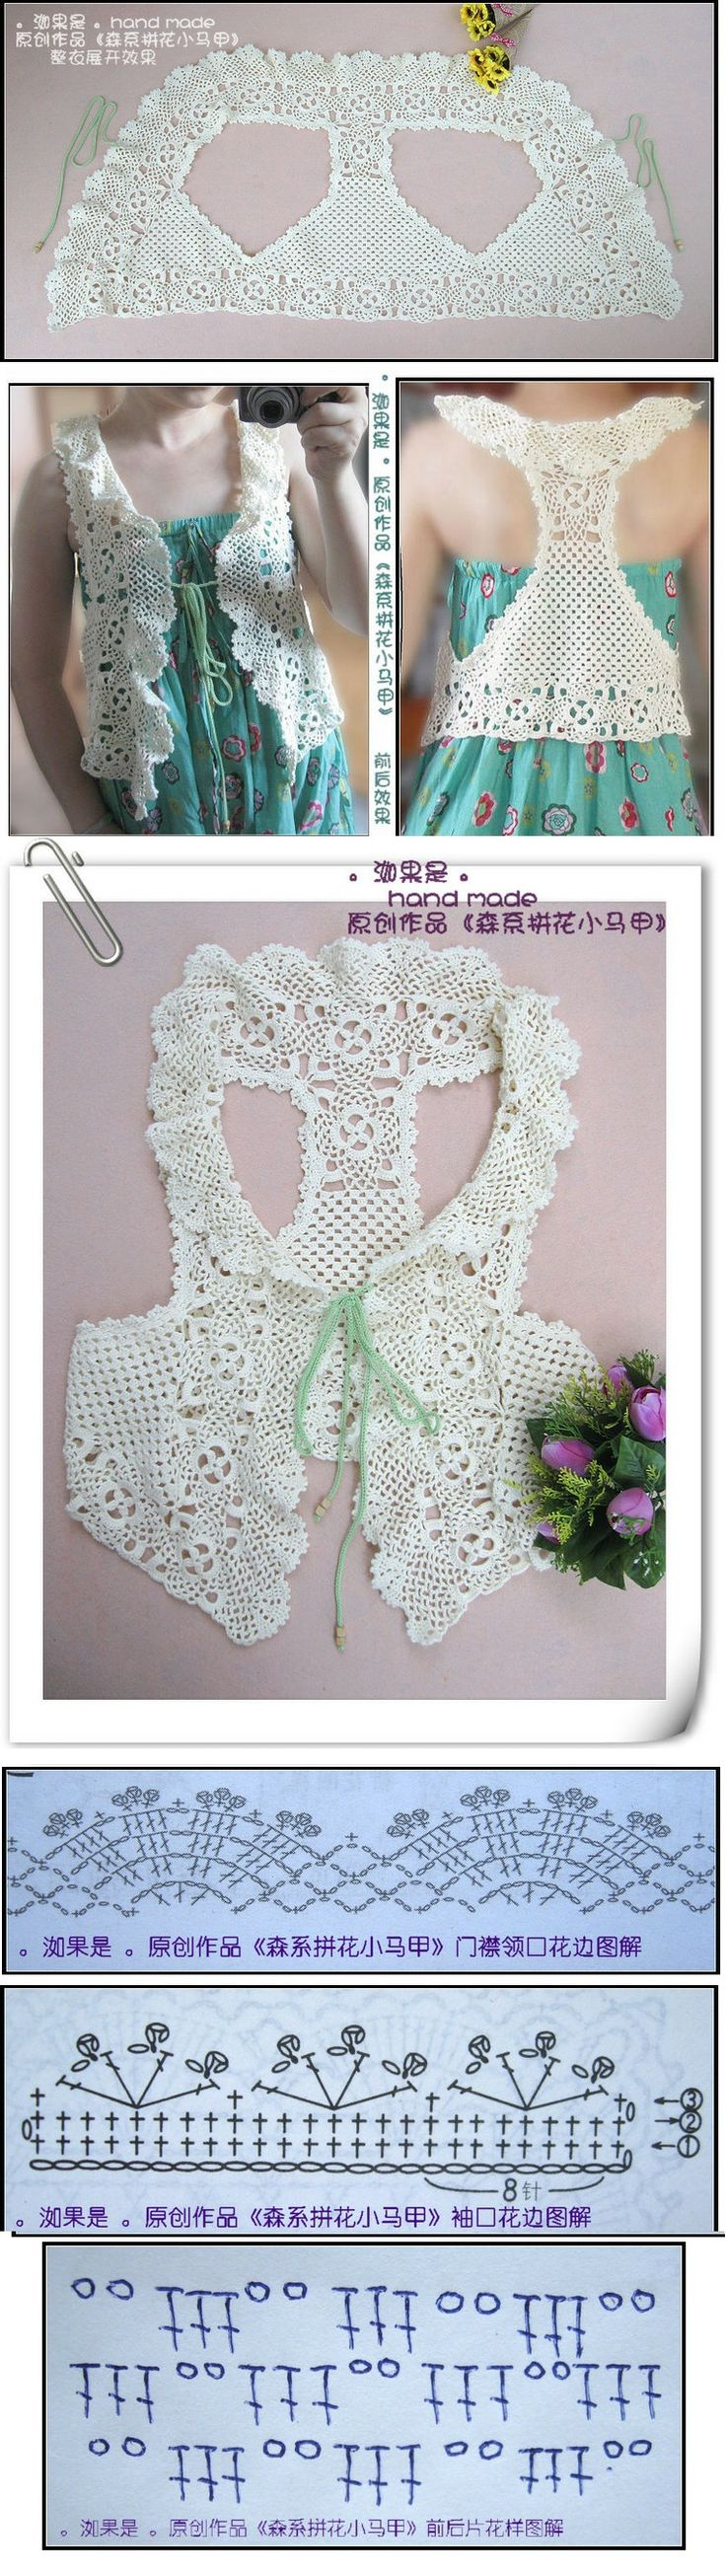 298 best Love This ~Crochet~ images on Pinterest | Crochet ideas ...